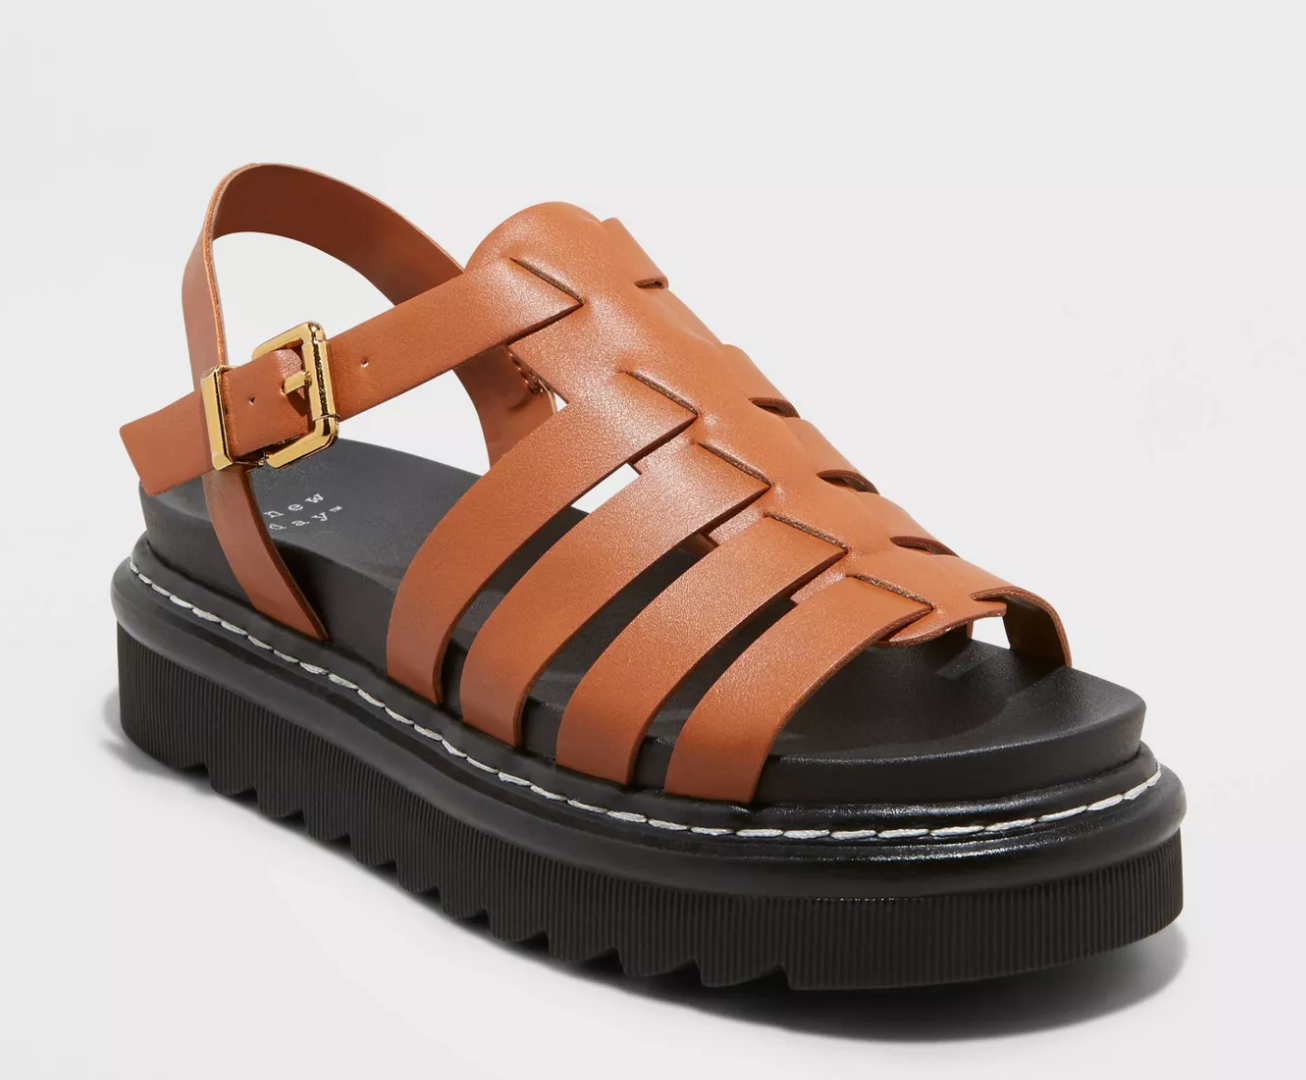 tan sandals with a chunky black platform sole